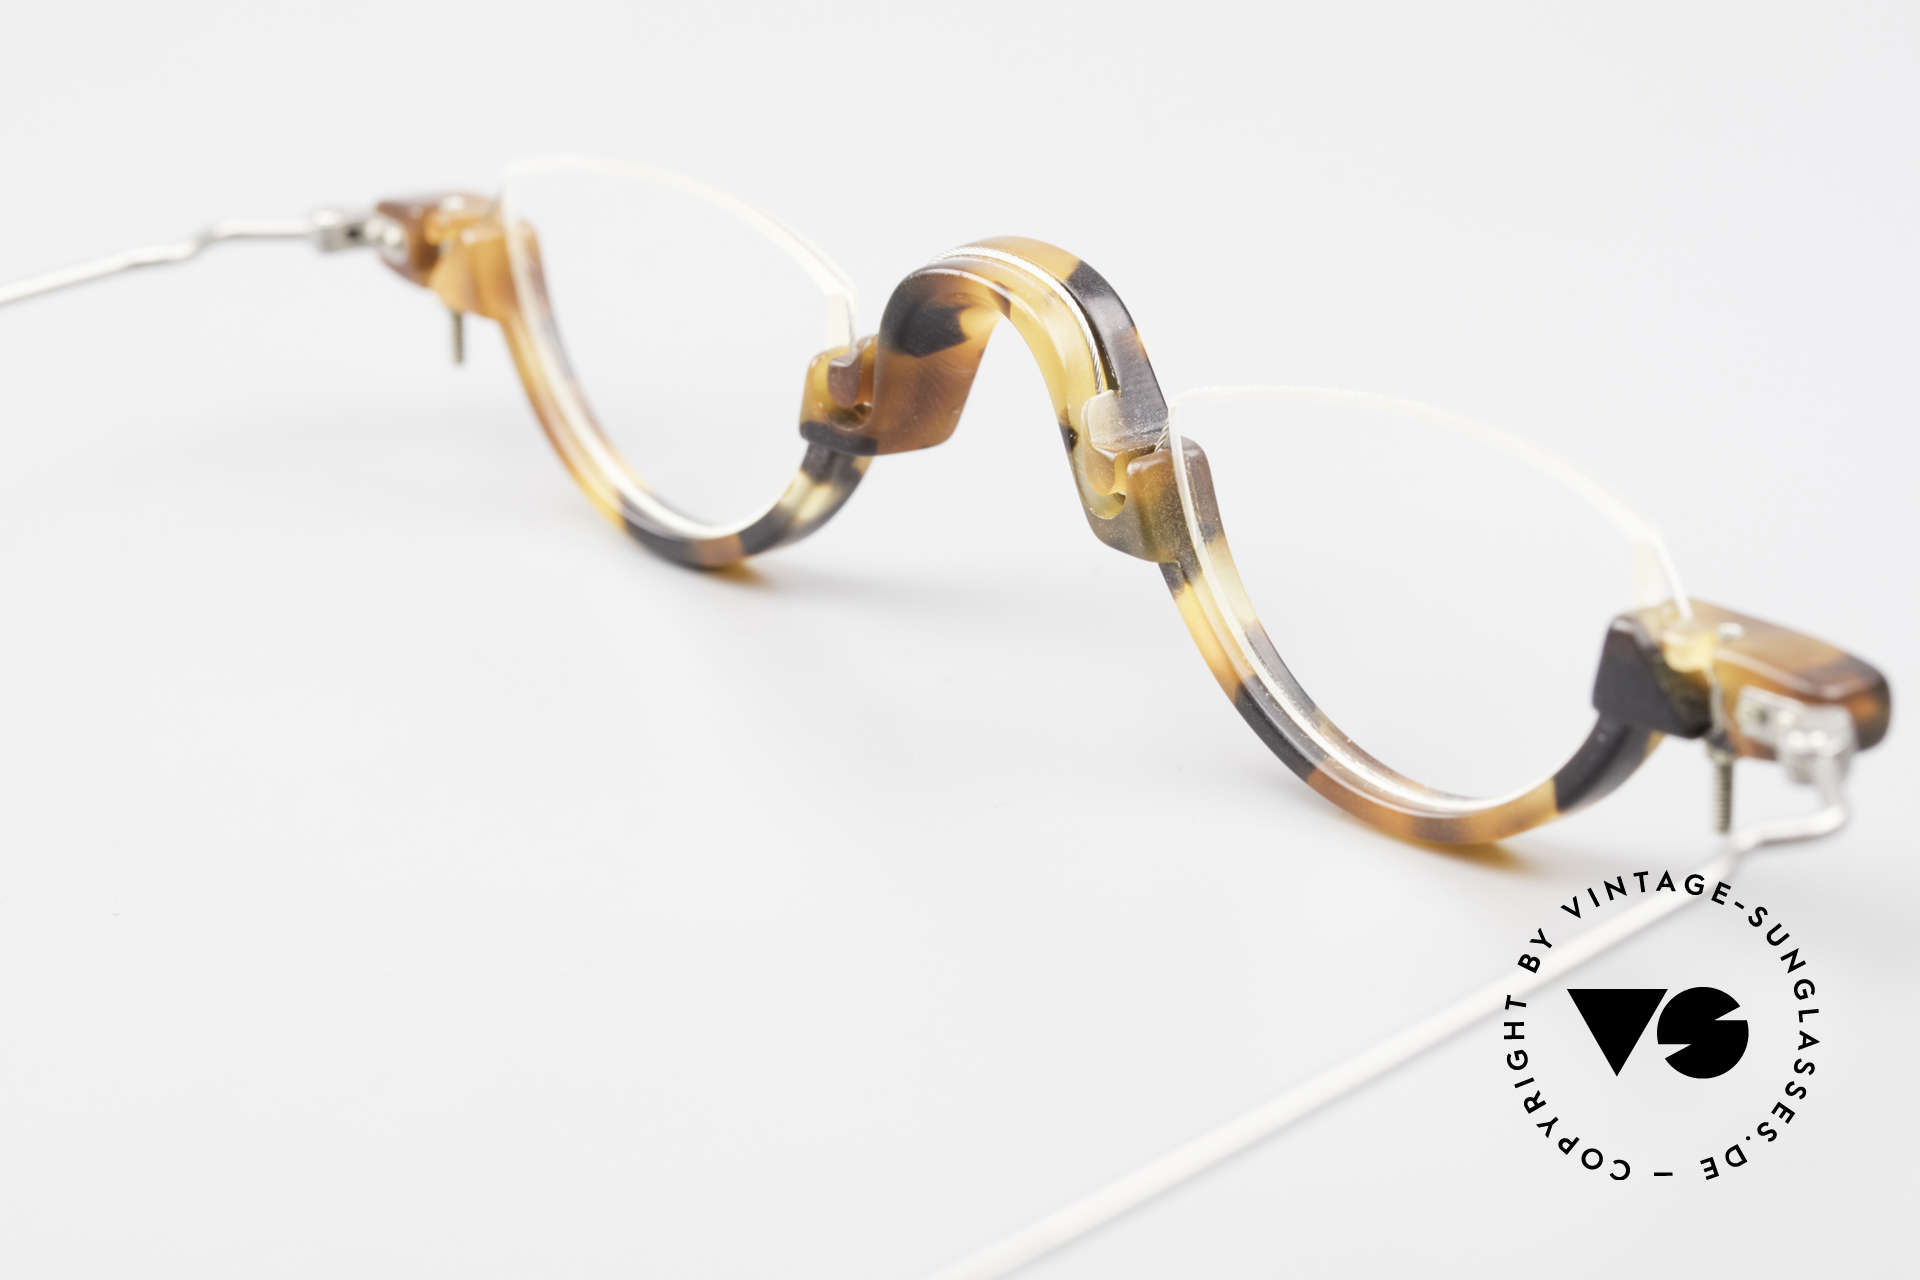 MDG Bauhaus 5010 Minimalist Reading Glasses 90s, the demo lenses should be replaced with prescriptions, Made for Men